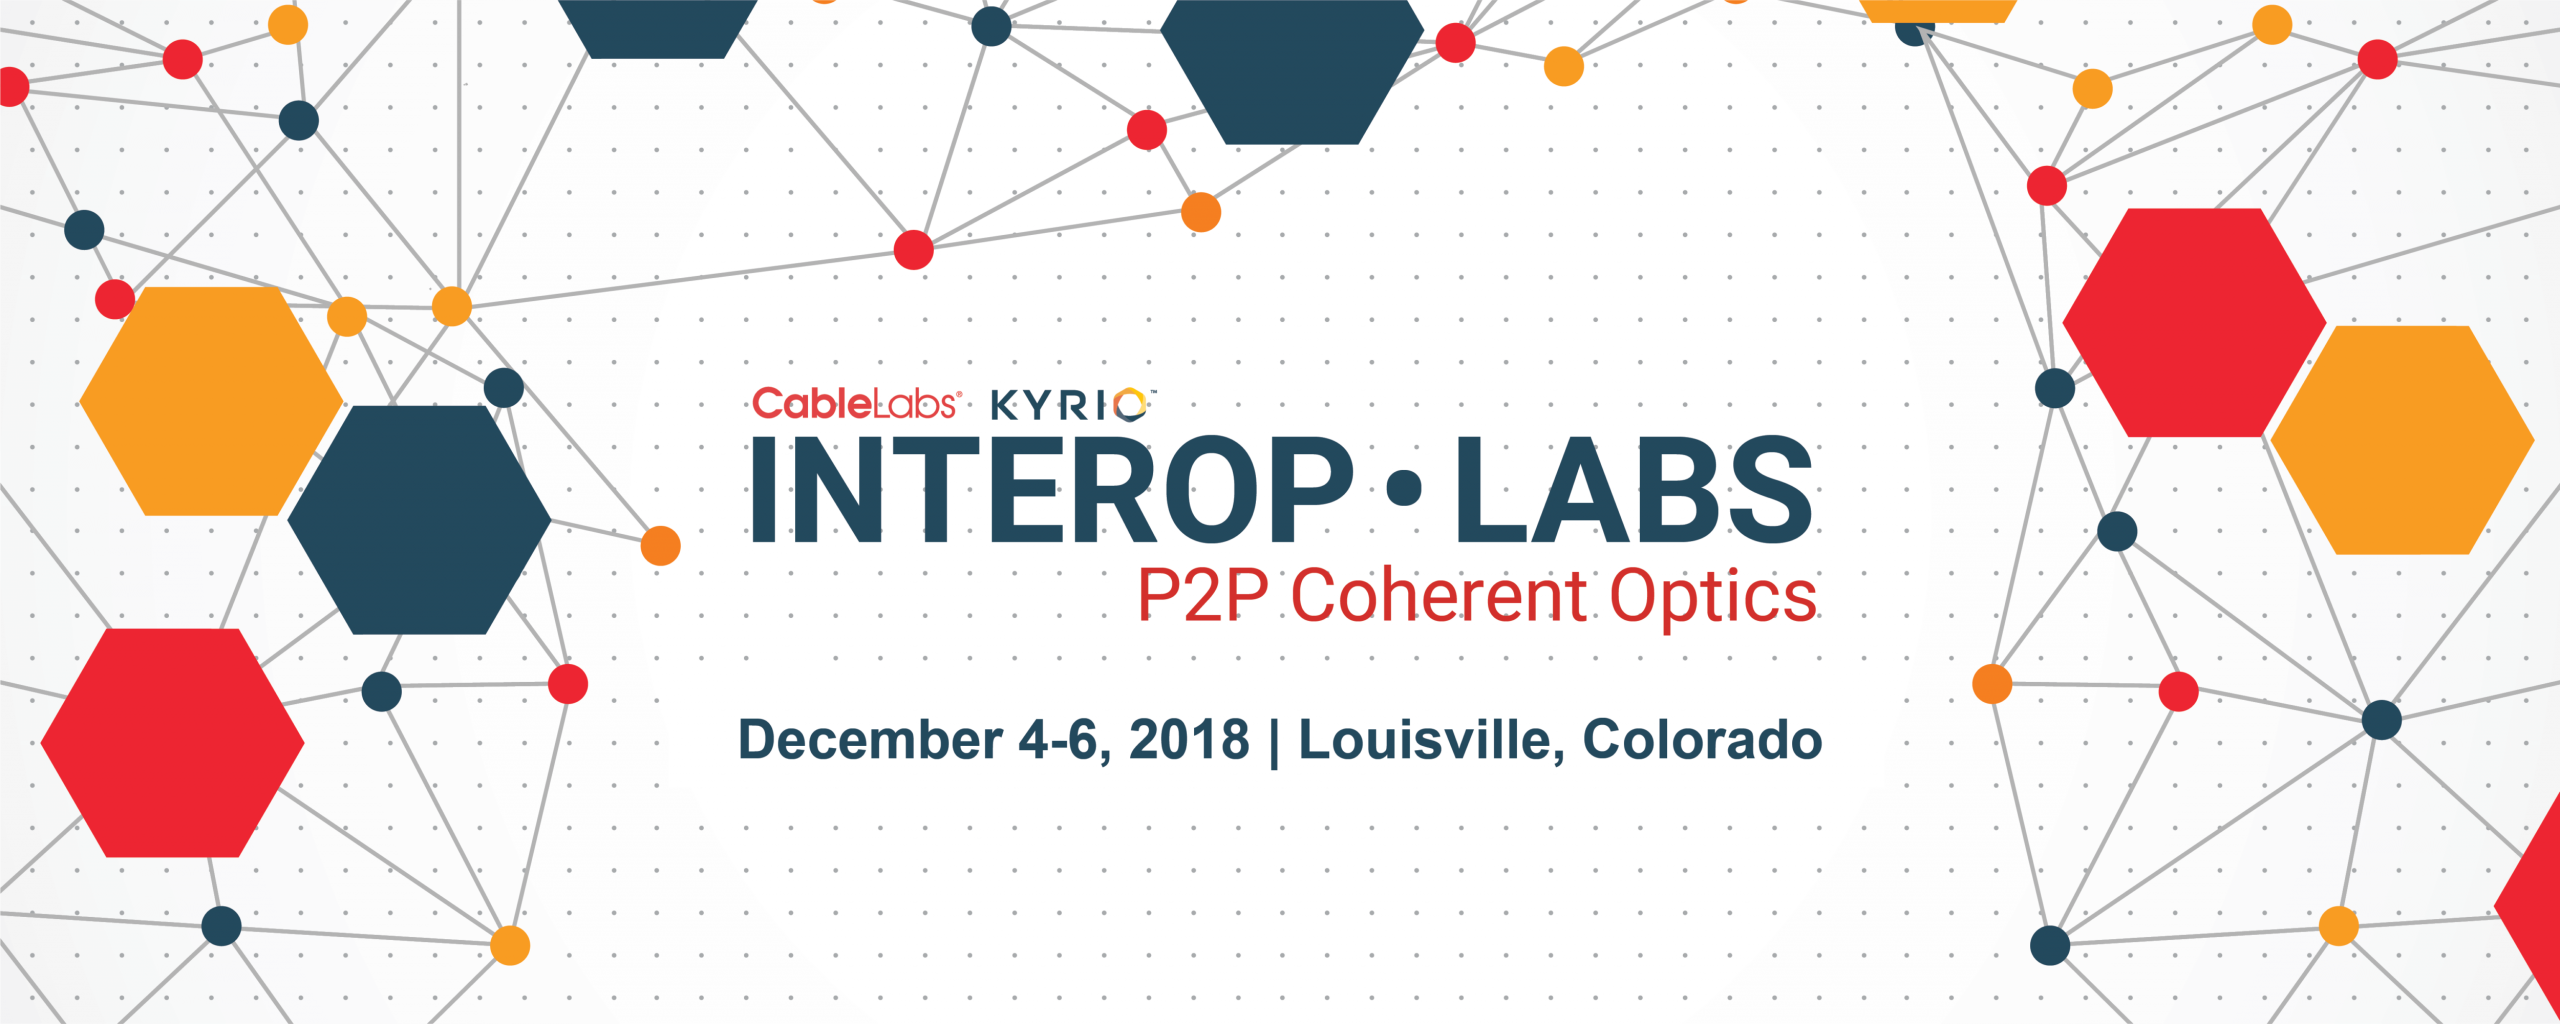 Interop·Labs: P2P Coherent Optics December 2018